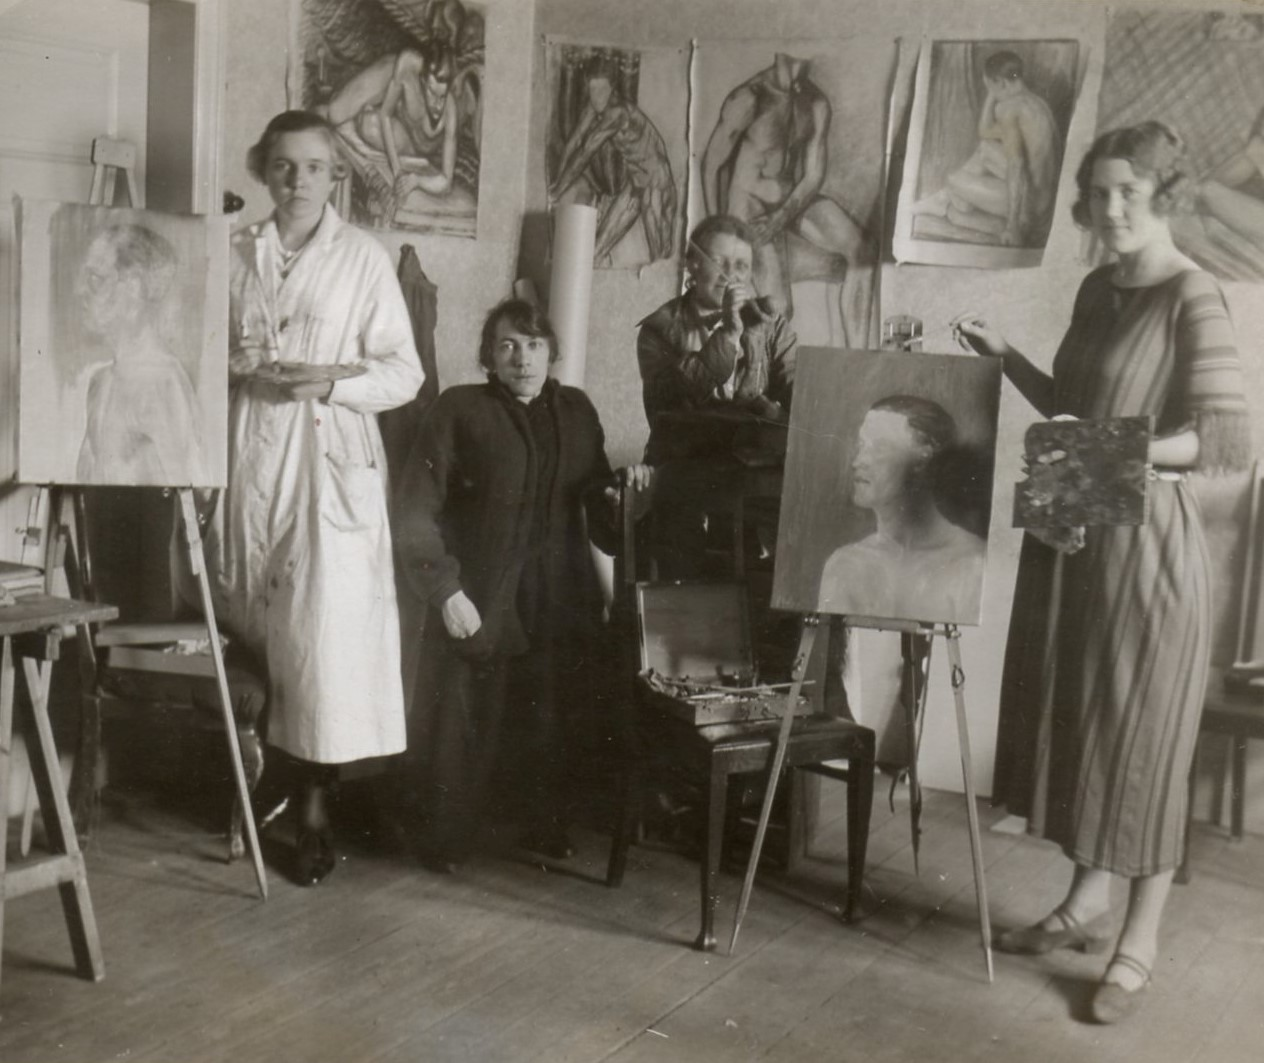 Ester Gill (second from left) with students in the art school she ran in the family home in Malmö, 1922 or 1923. Photographer unknown (privately owned image)